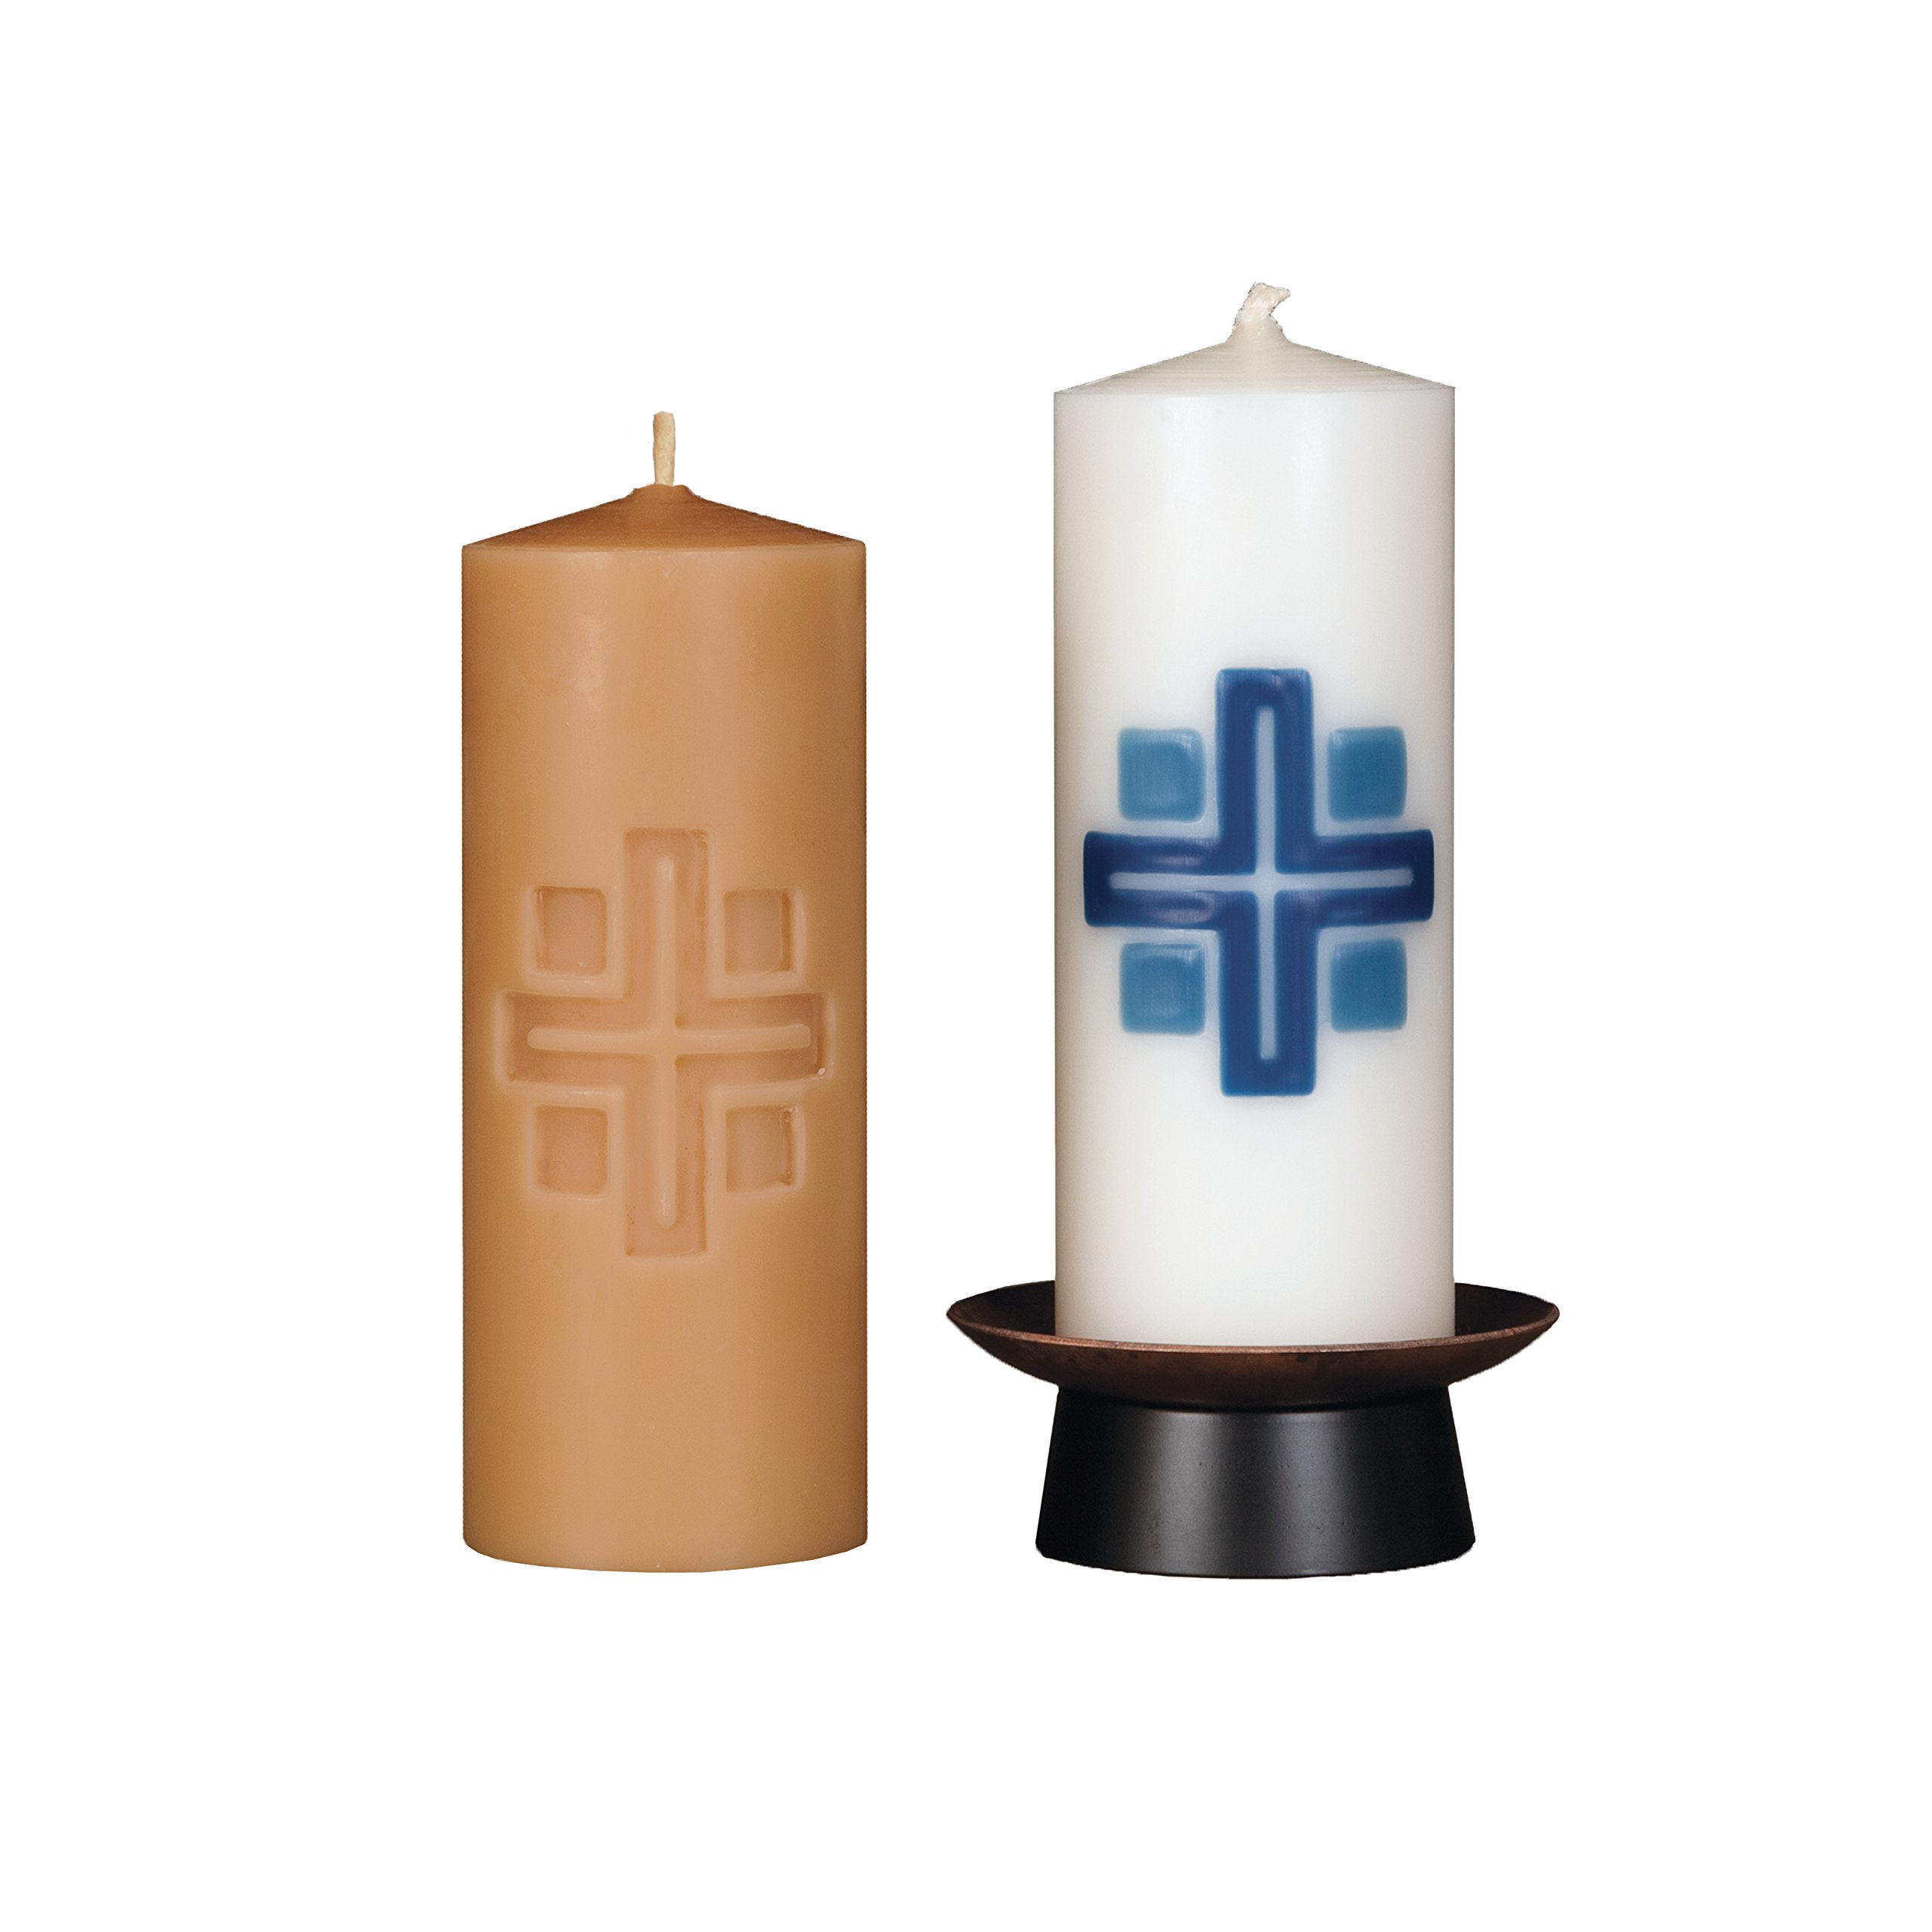 Beeswax Christos™ Candle Set; 2-1/2'' x 6'' candles with base; Chrismata™ design in blue. Handcrafted in New England. Made in America. by Marklin Candle